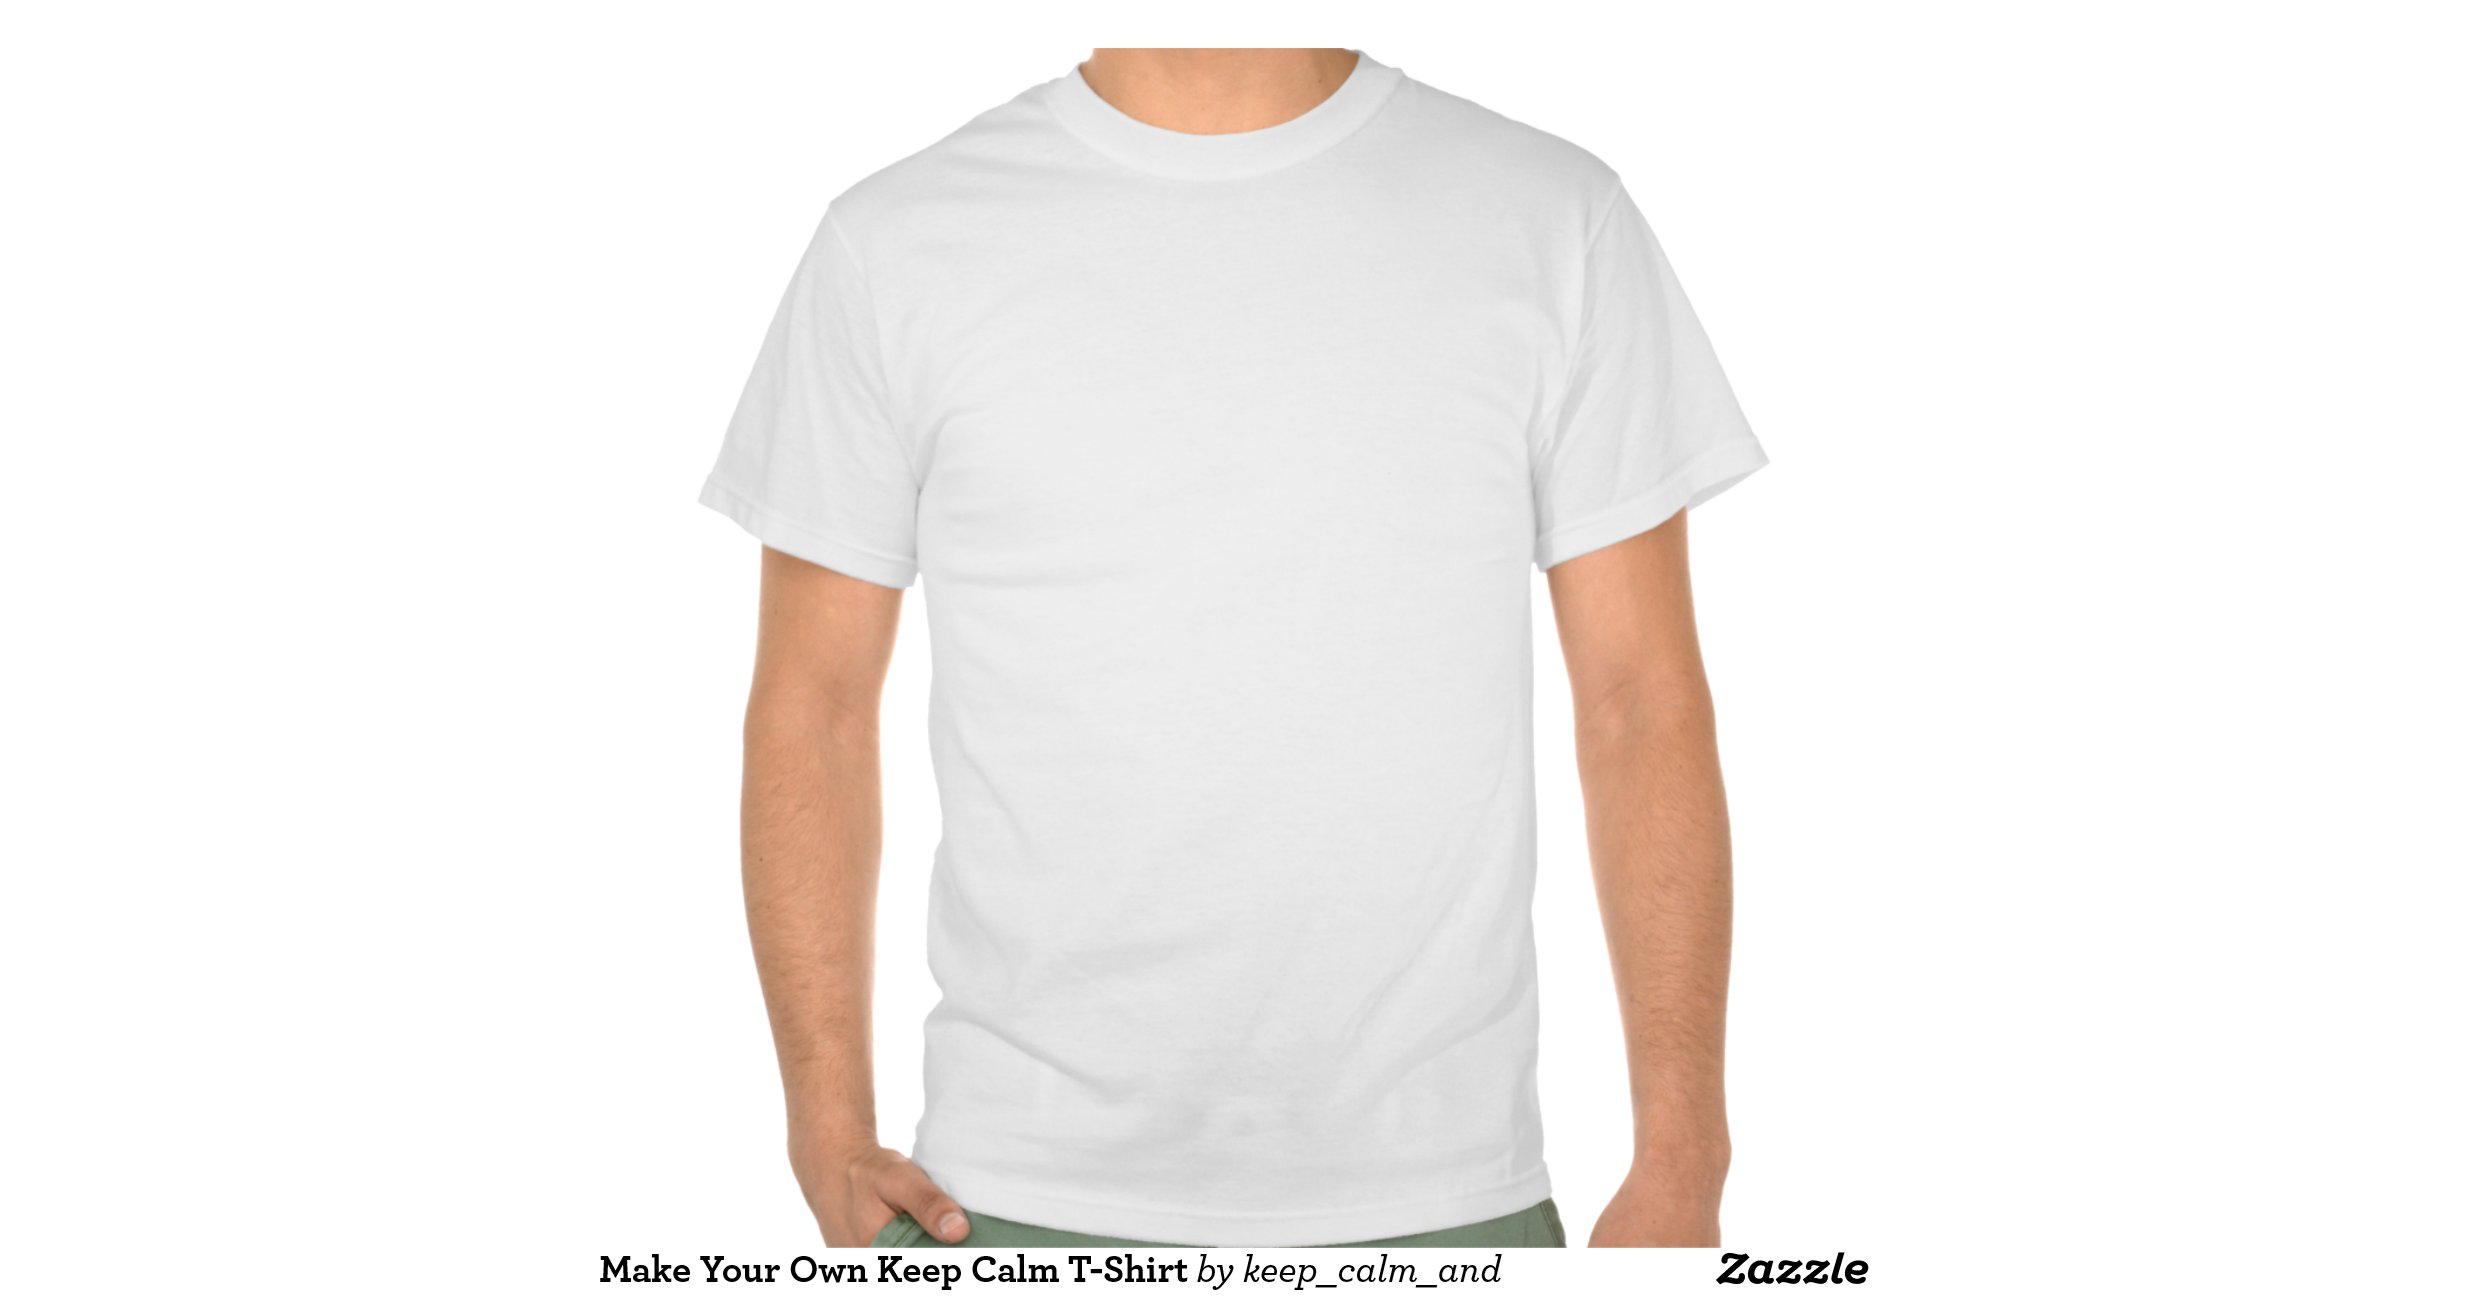 mkae your own shirt - Ideal.vistalist.co